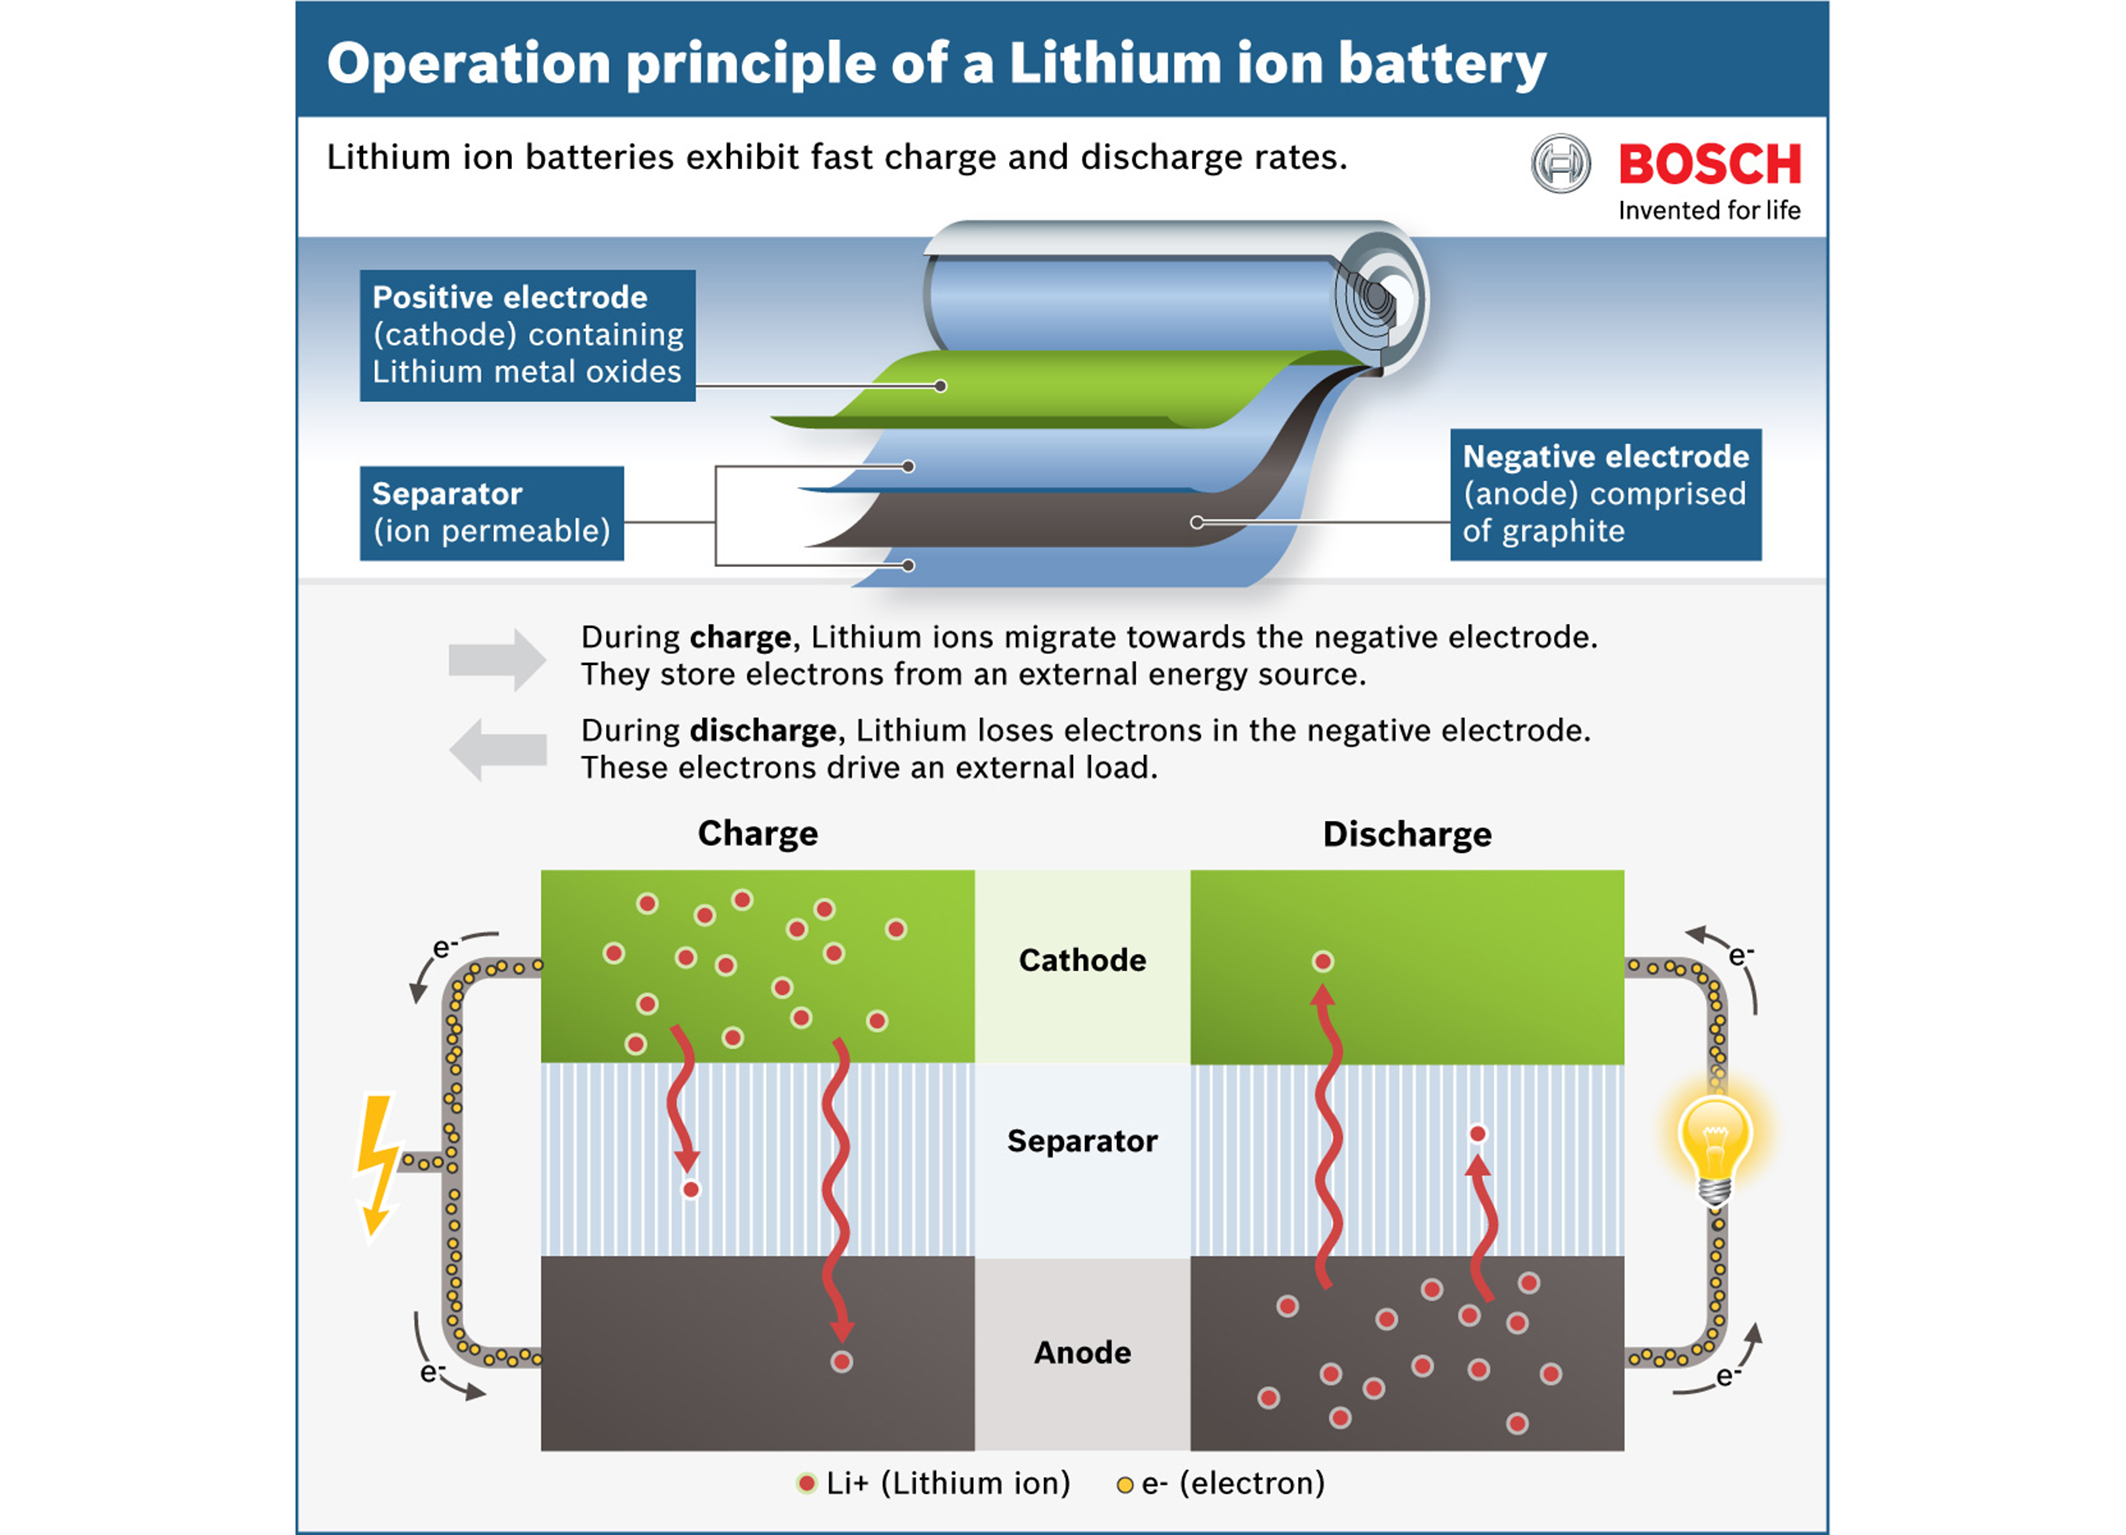 Boschusinnovation Bosch Media Service Wiring Diagram For Gateway Laptop Battery Showing How A Lithium Ion Works